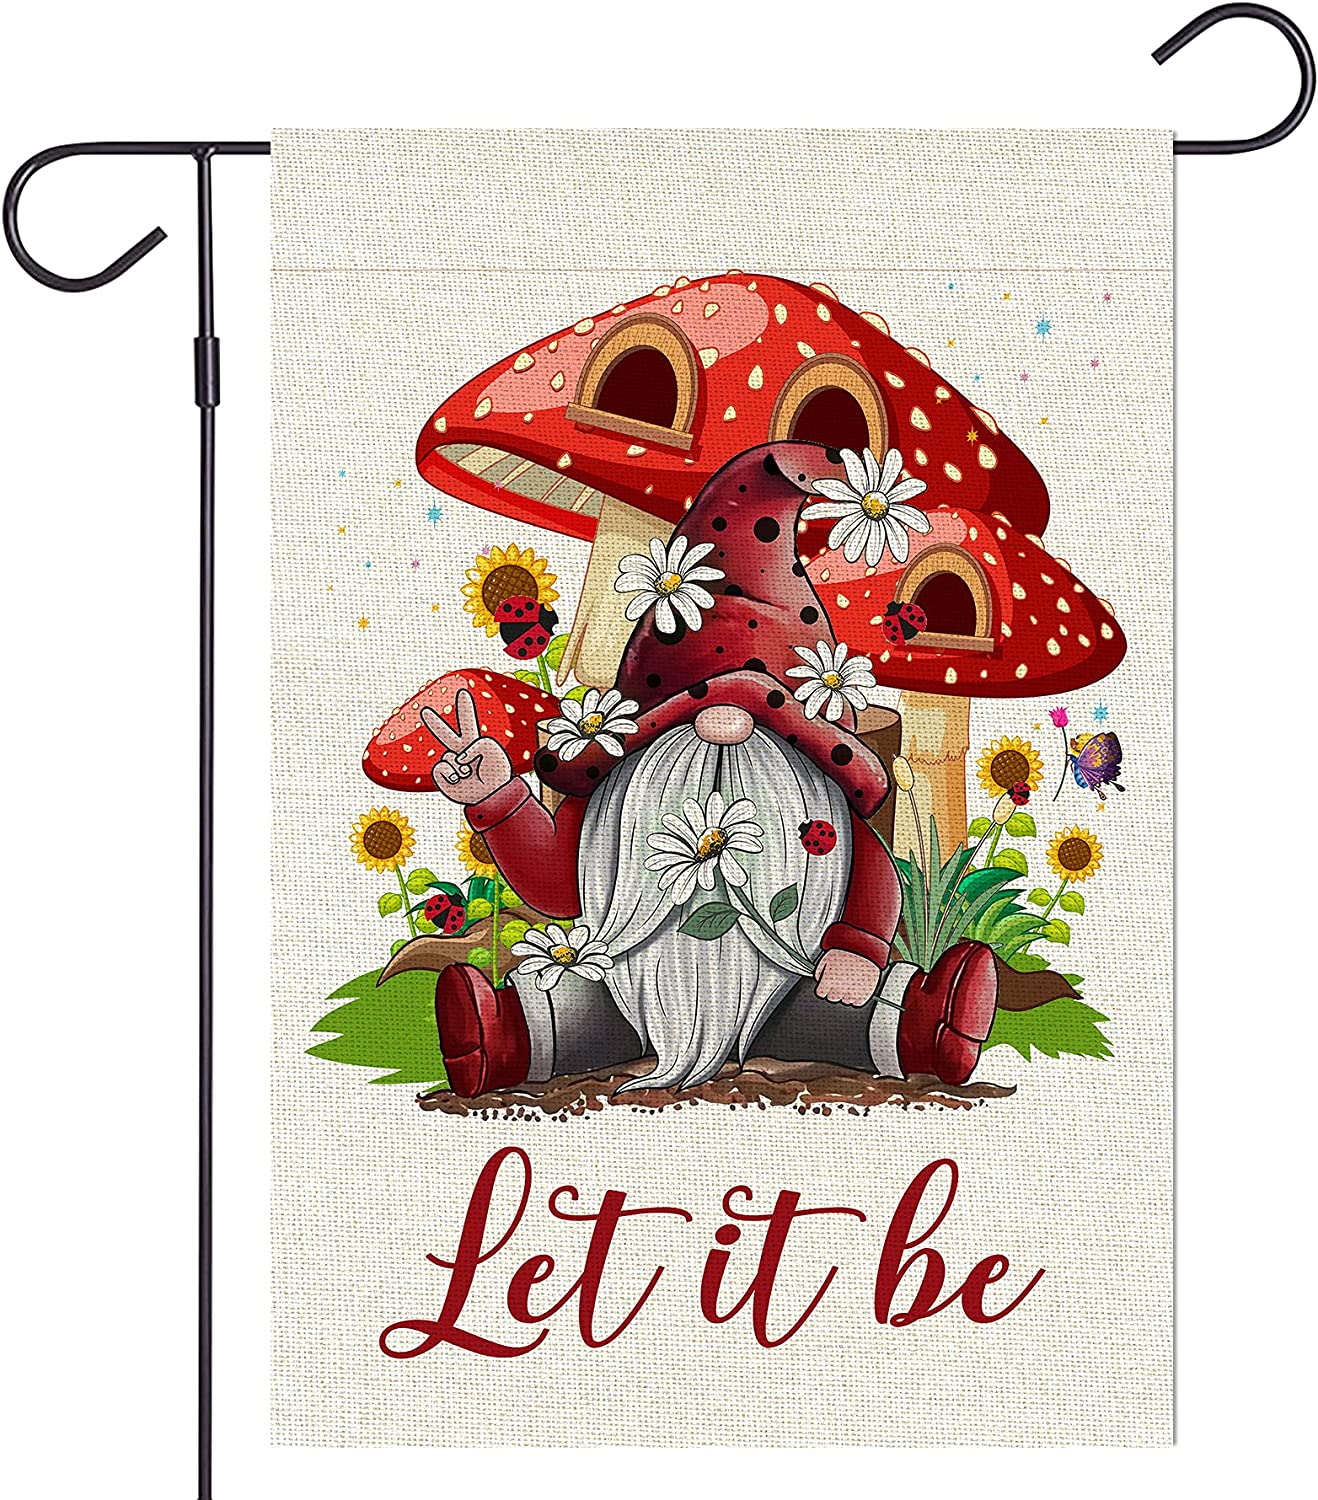 Haustalk Let it be Red Gnomes Garden Flag Vertical Double Sided Mushroom Yard Spring Summer Outdoor Decor (12.5 x 18, Let it be)